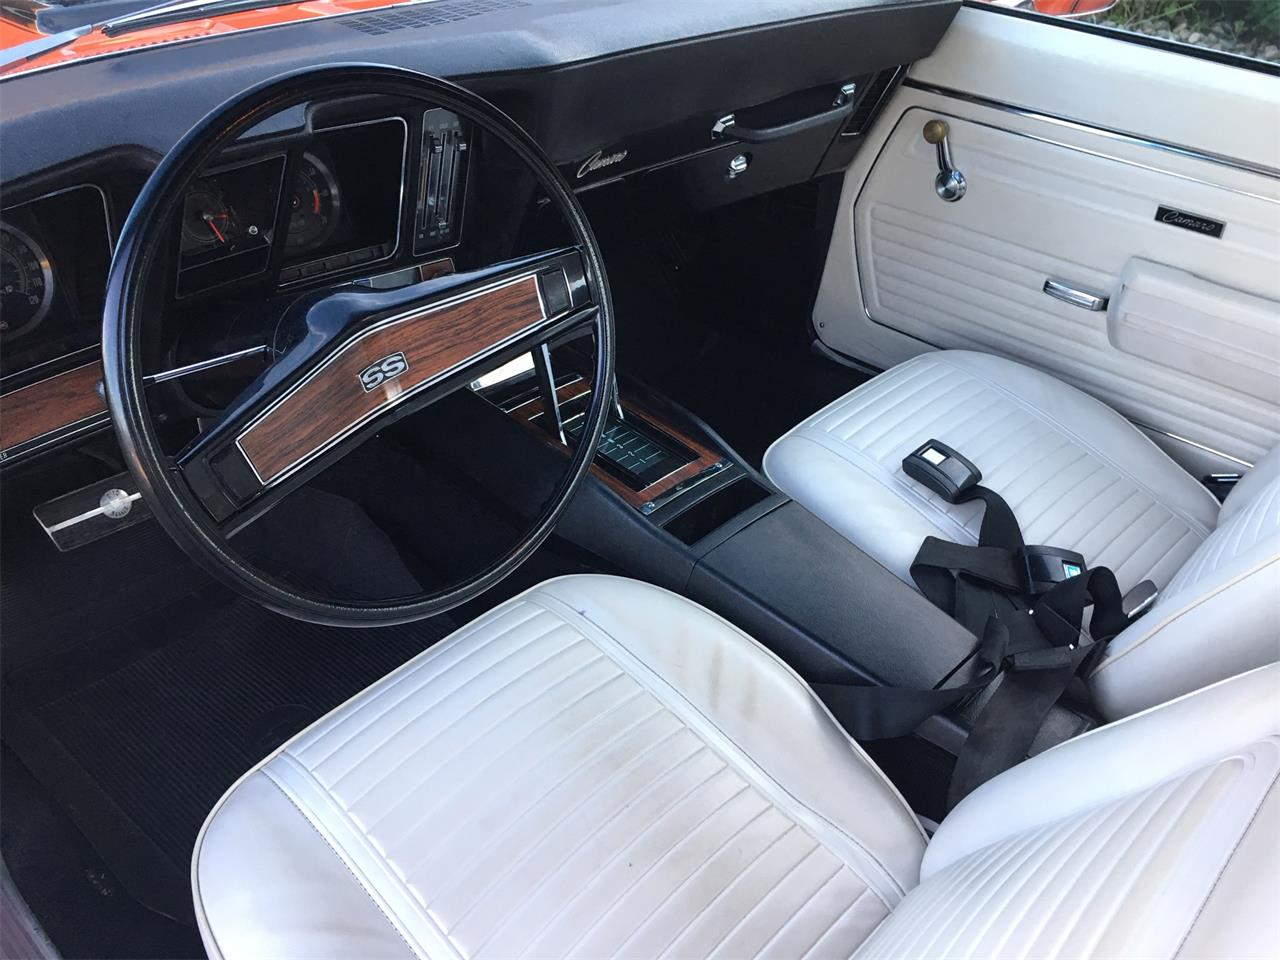 Large Picture of 1969 Chevrolet Camaro RS/SS located in Mill Hall Pennsylvania Auction Vehicle Offered by Central Pennsylvania Auto Auction - QF5Q